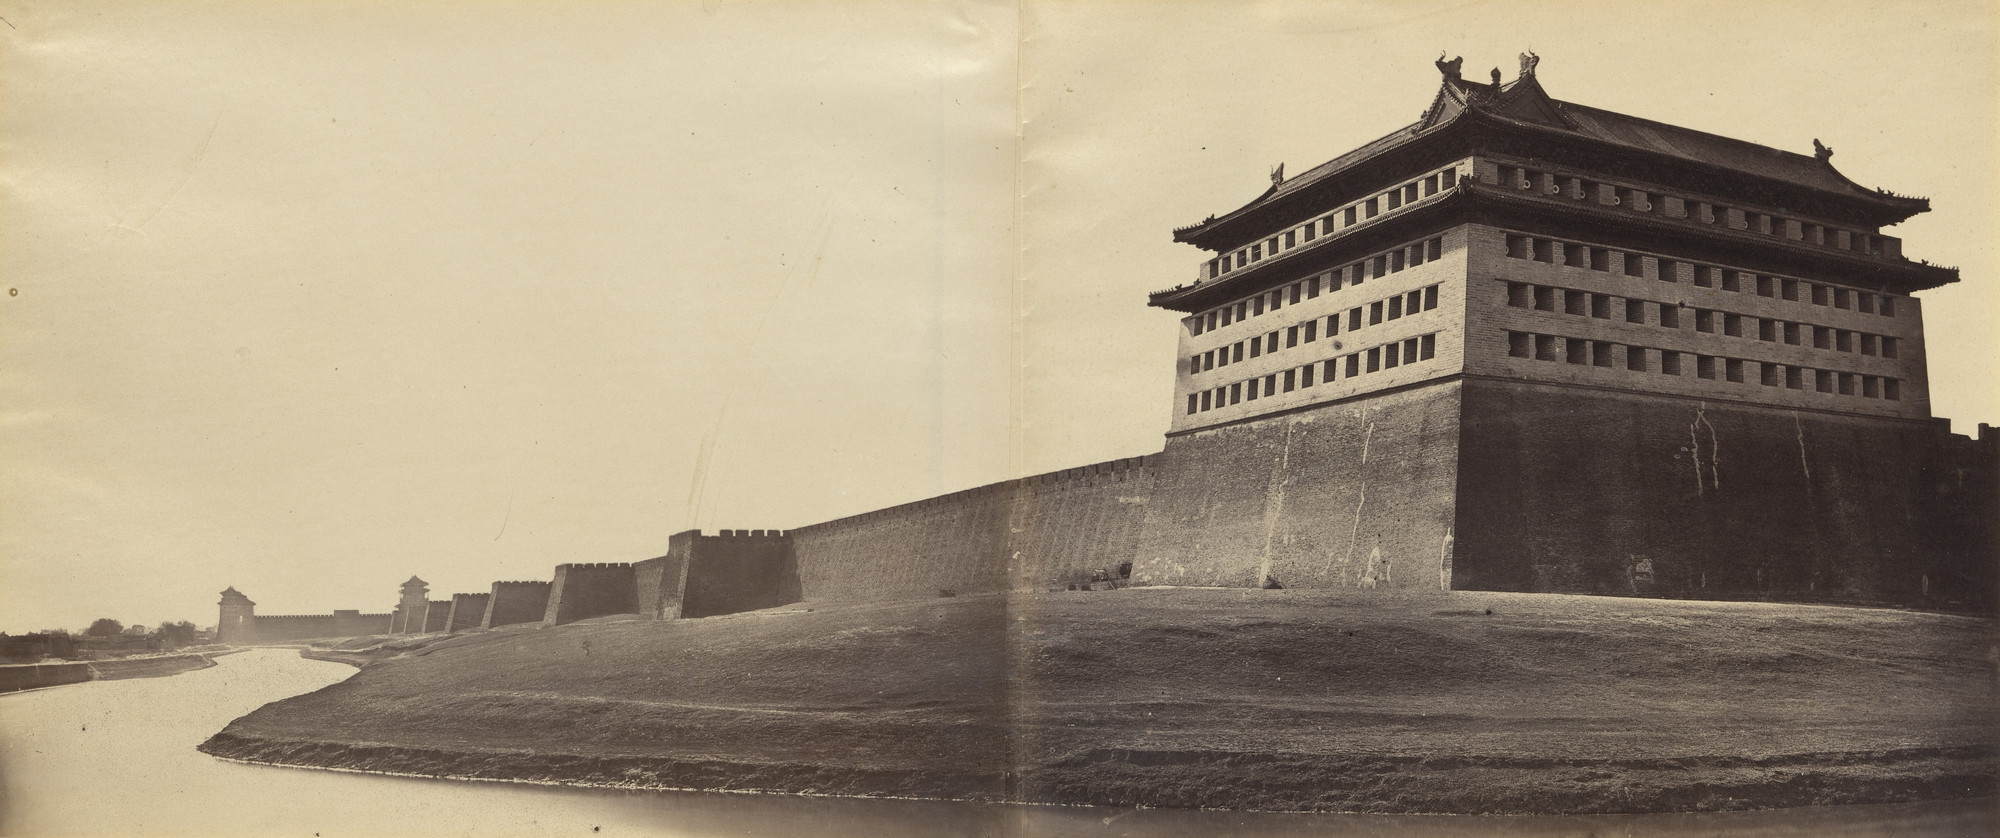 Felice Beato. North and East Corner of the Wall of Pekin. 1860